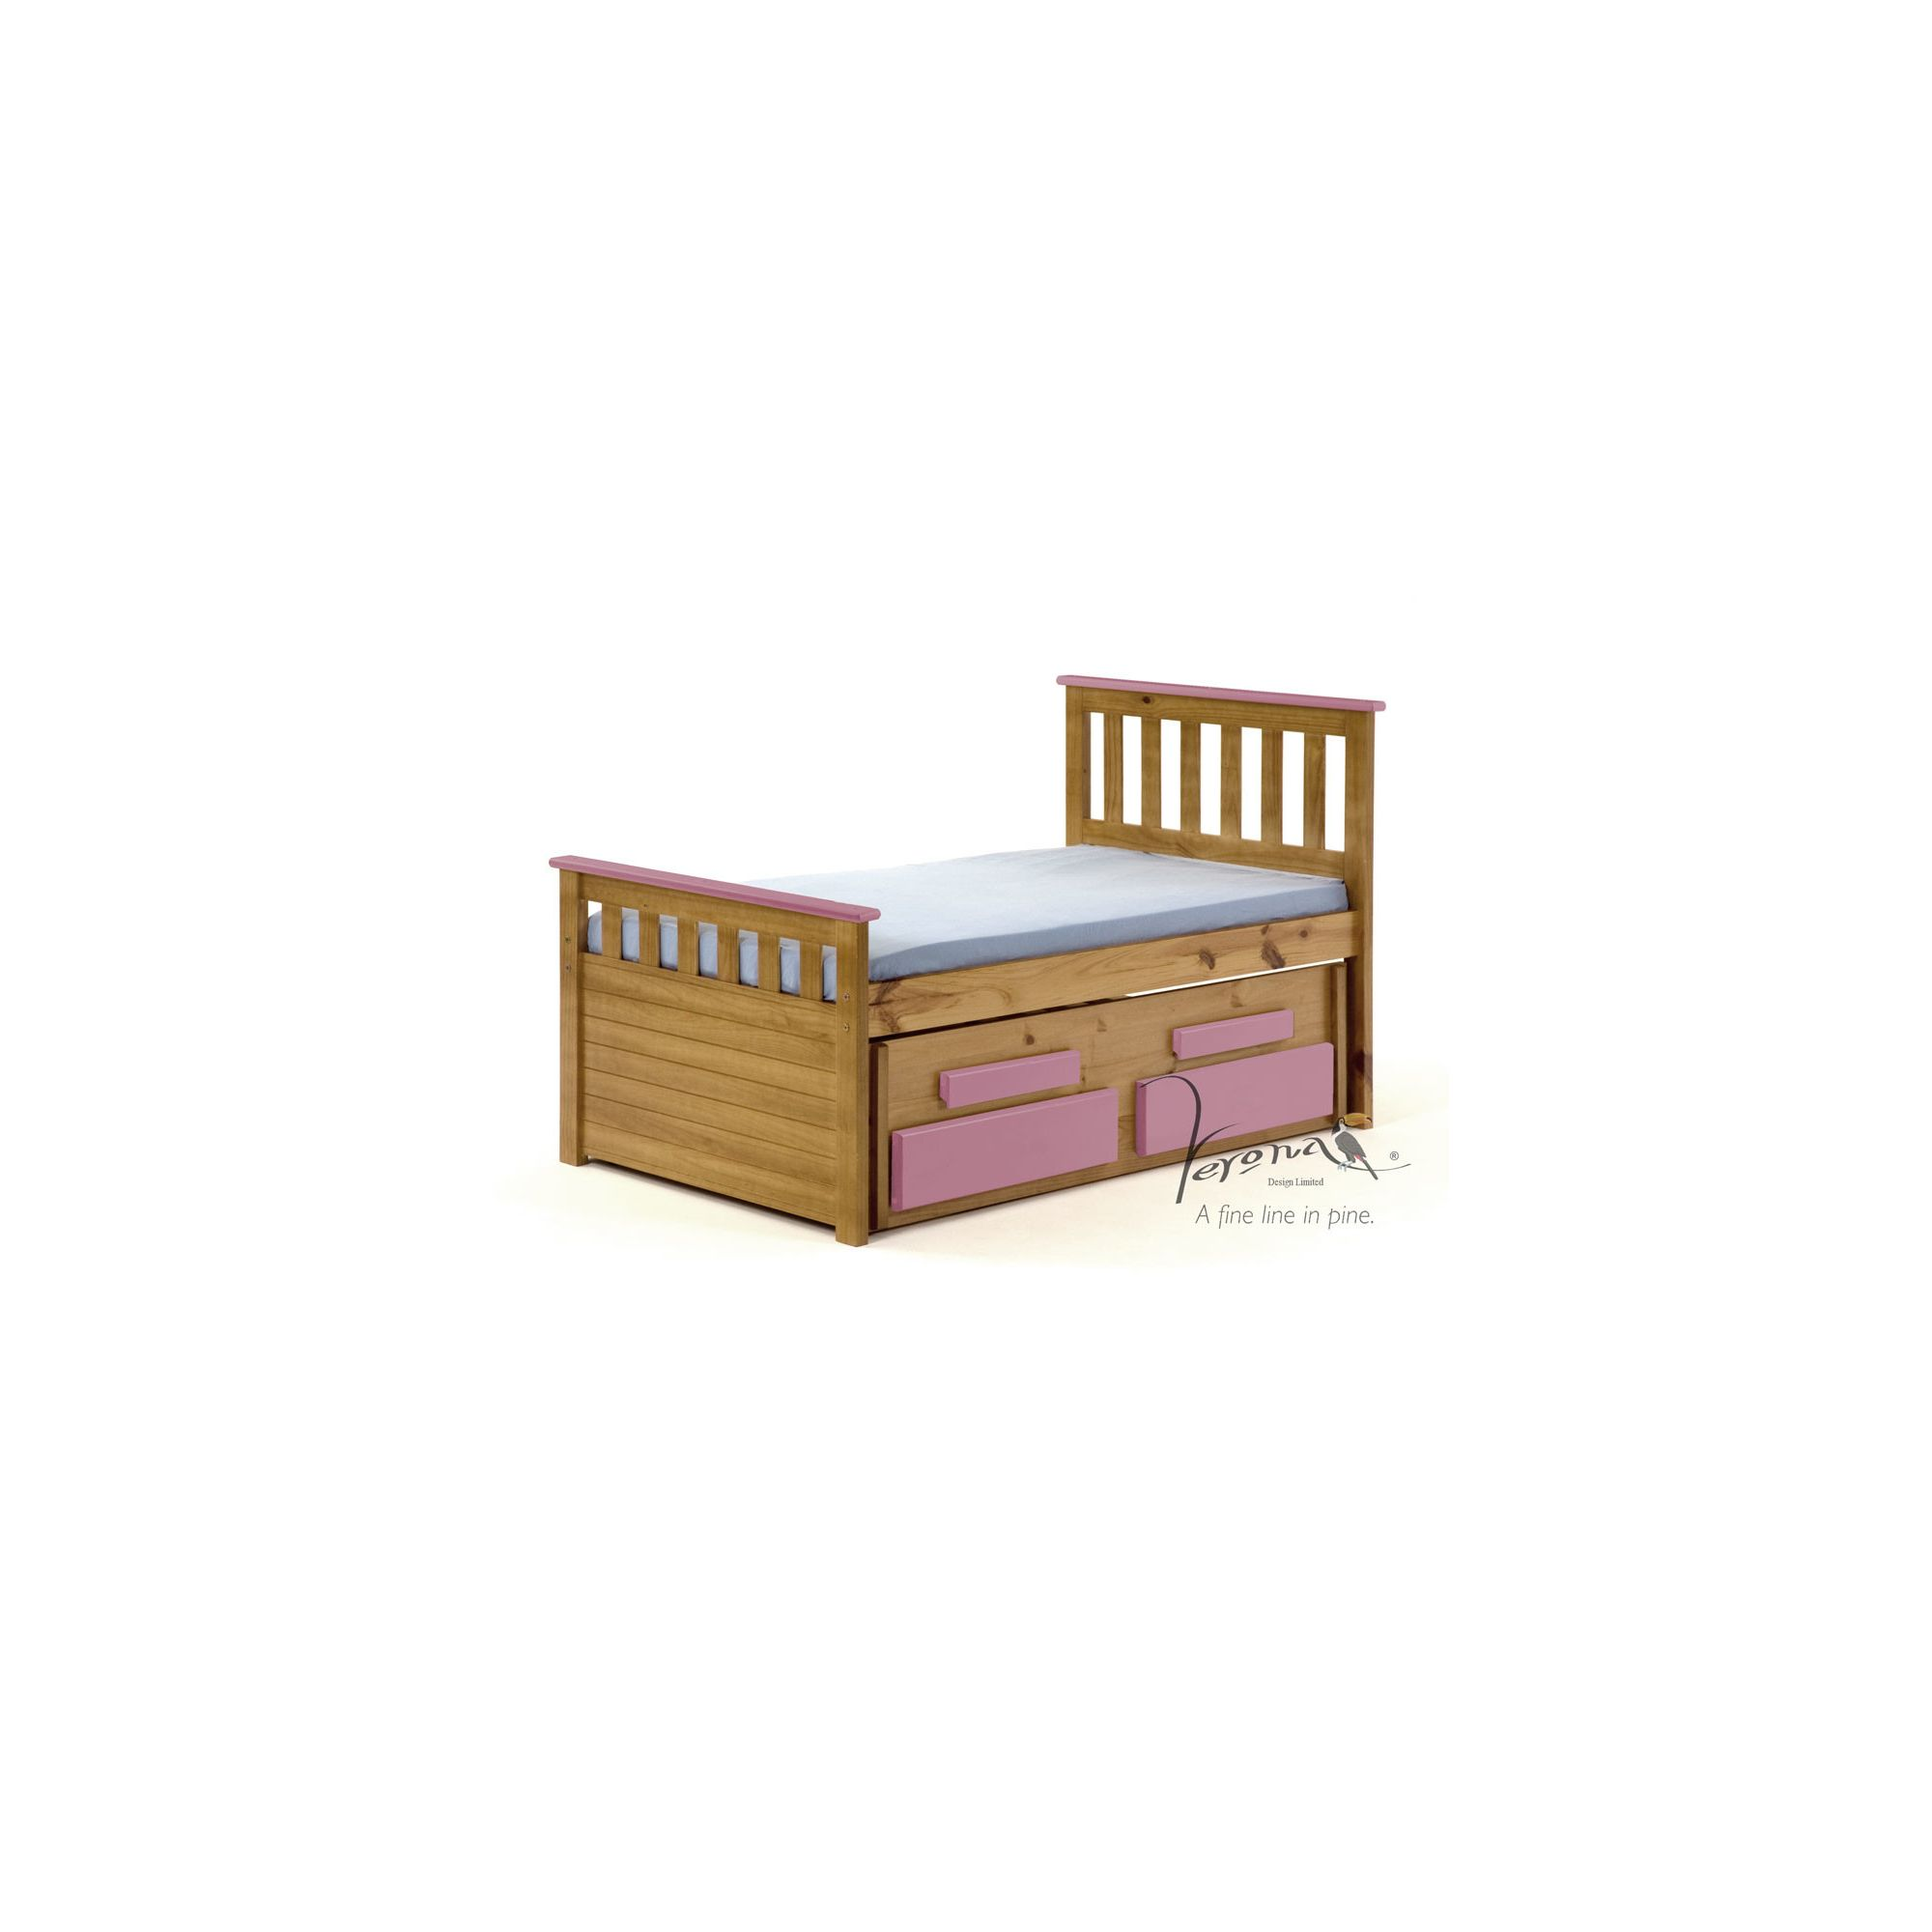 Verona Bergamo Kids Captains Bed with guest bed - Antique Pink at Tesco Direct